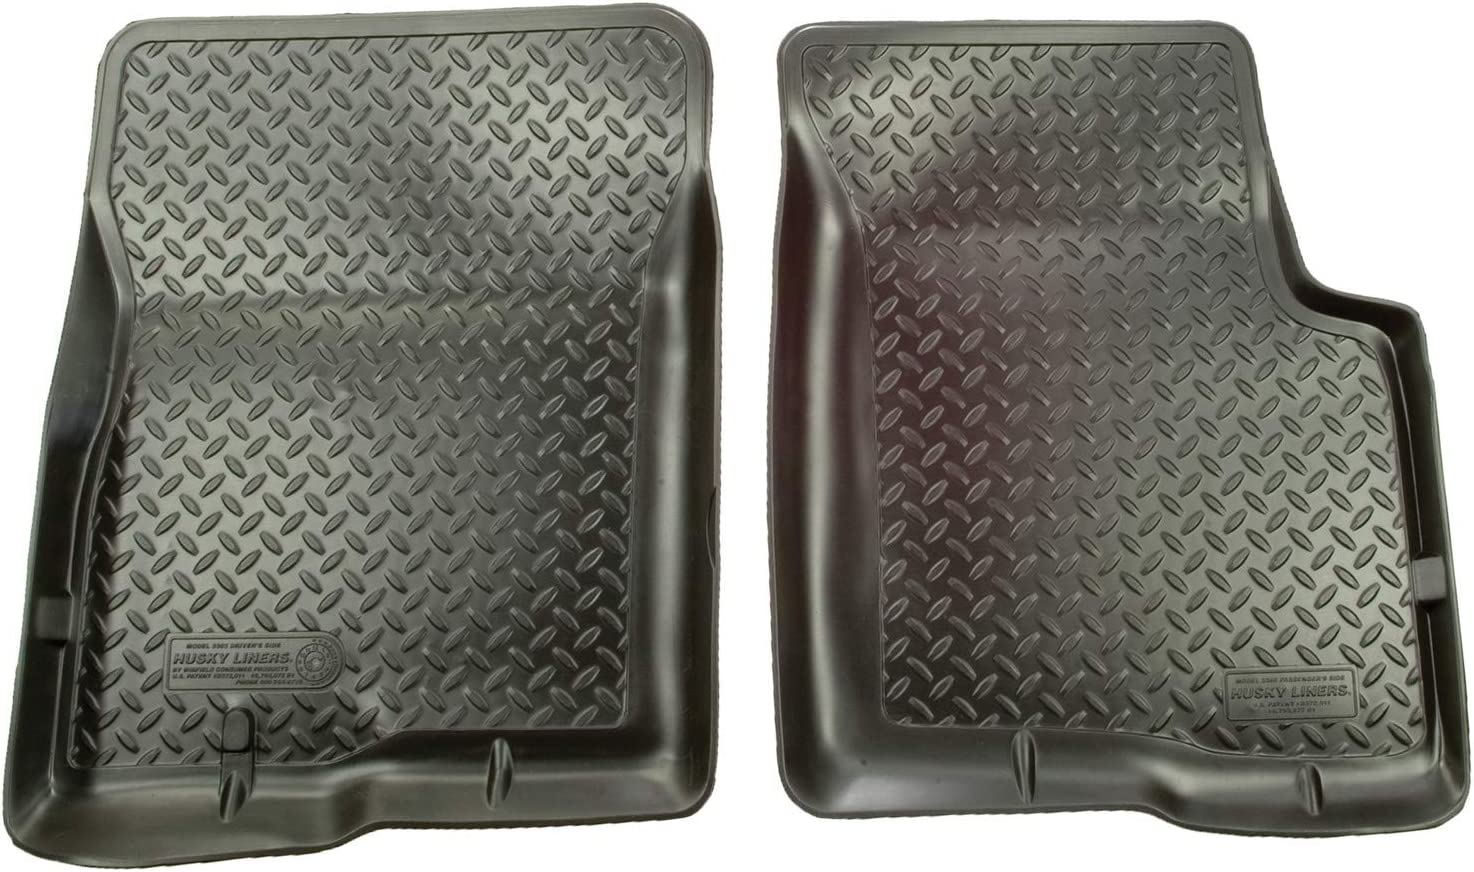 Husky Liners Fits 1980-96 Ford Bronco, 1980-96 Ford F-150, 1980-97 Ford F-250/F-350 Classic Style Front Floor Mats